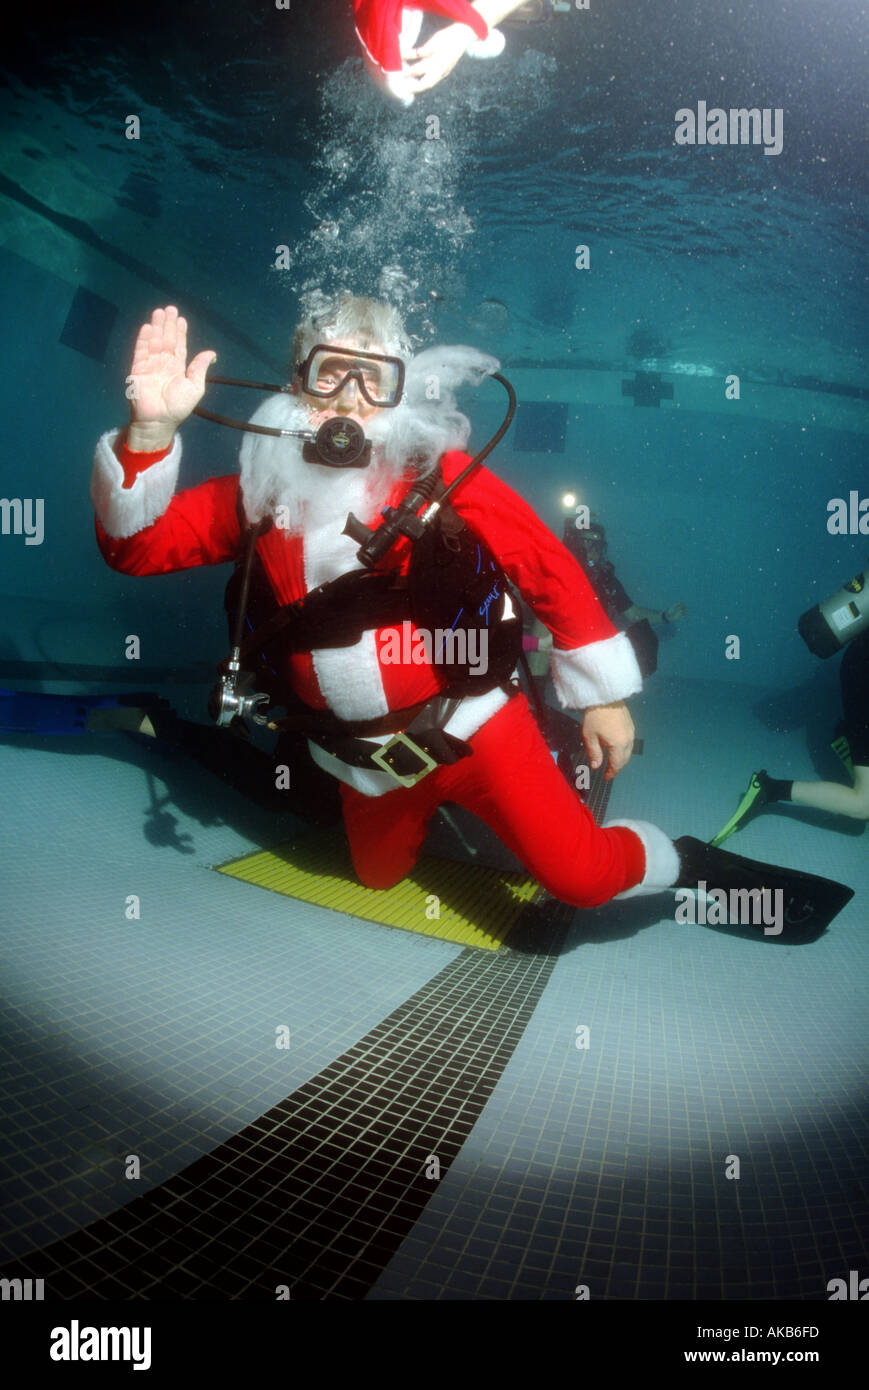 In this YMCA pool Santa Claus swims waves and loses his hat but still enjoys the holiday spirit on scuba - Stock Image